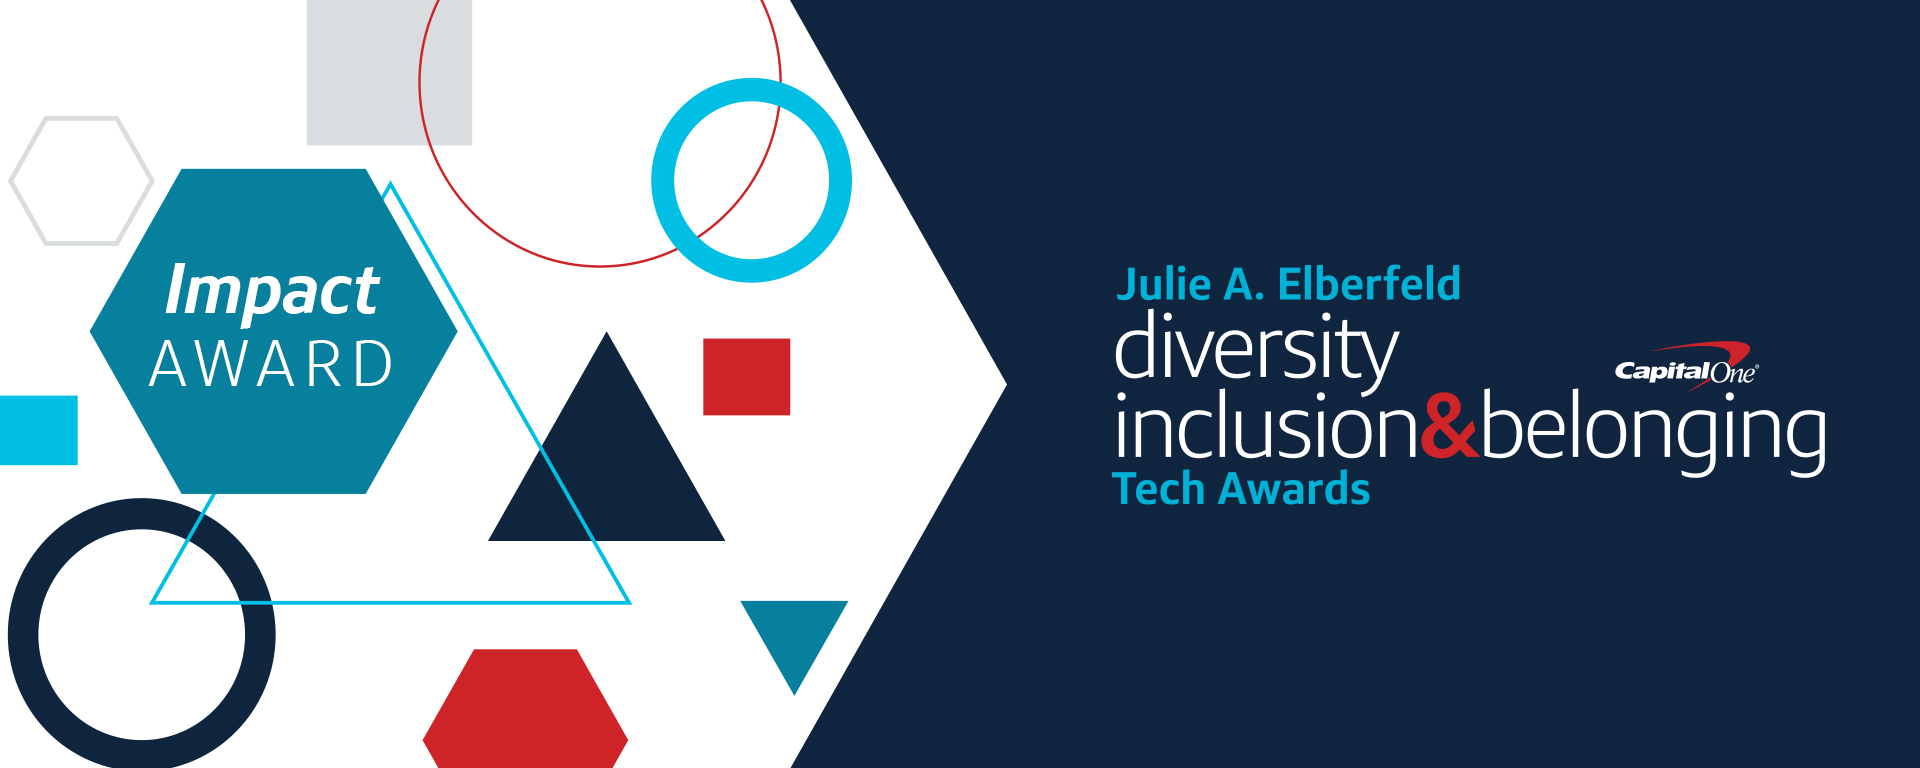 Julie A. Elberfeld Tech Diversity, Inclusion and Belonging Impact Award